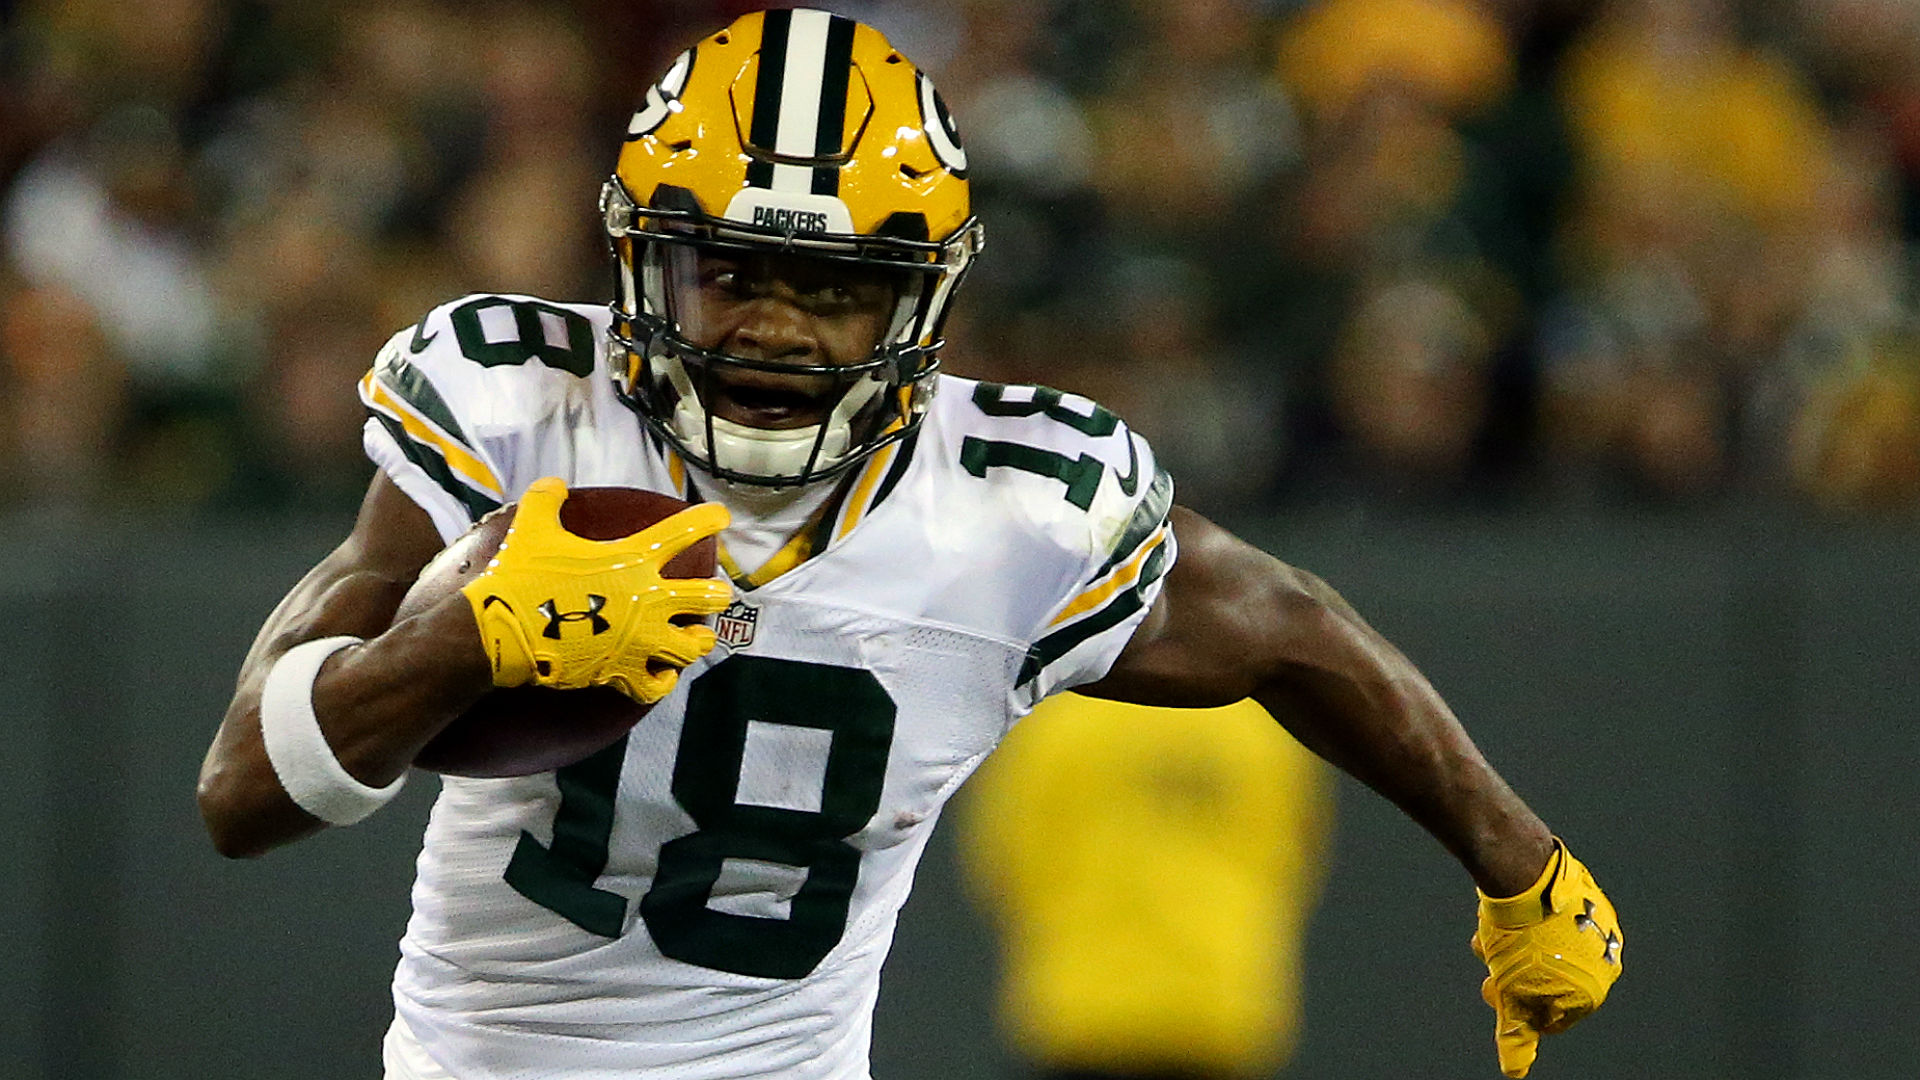 Randall Cobb, Cowboys agree to deal bringing former Packers WR to Dallas